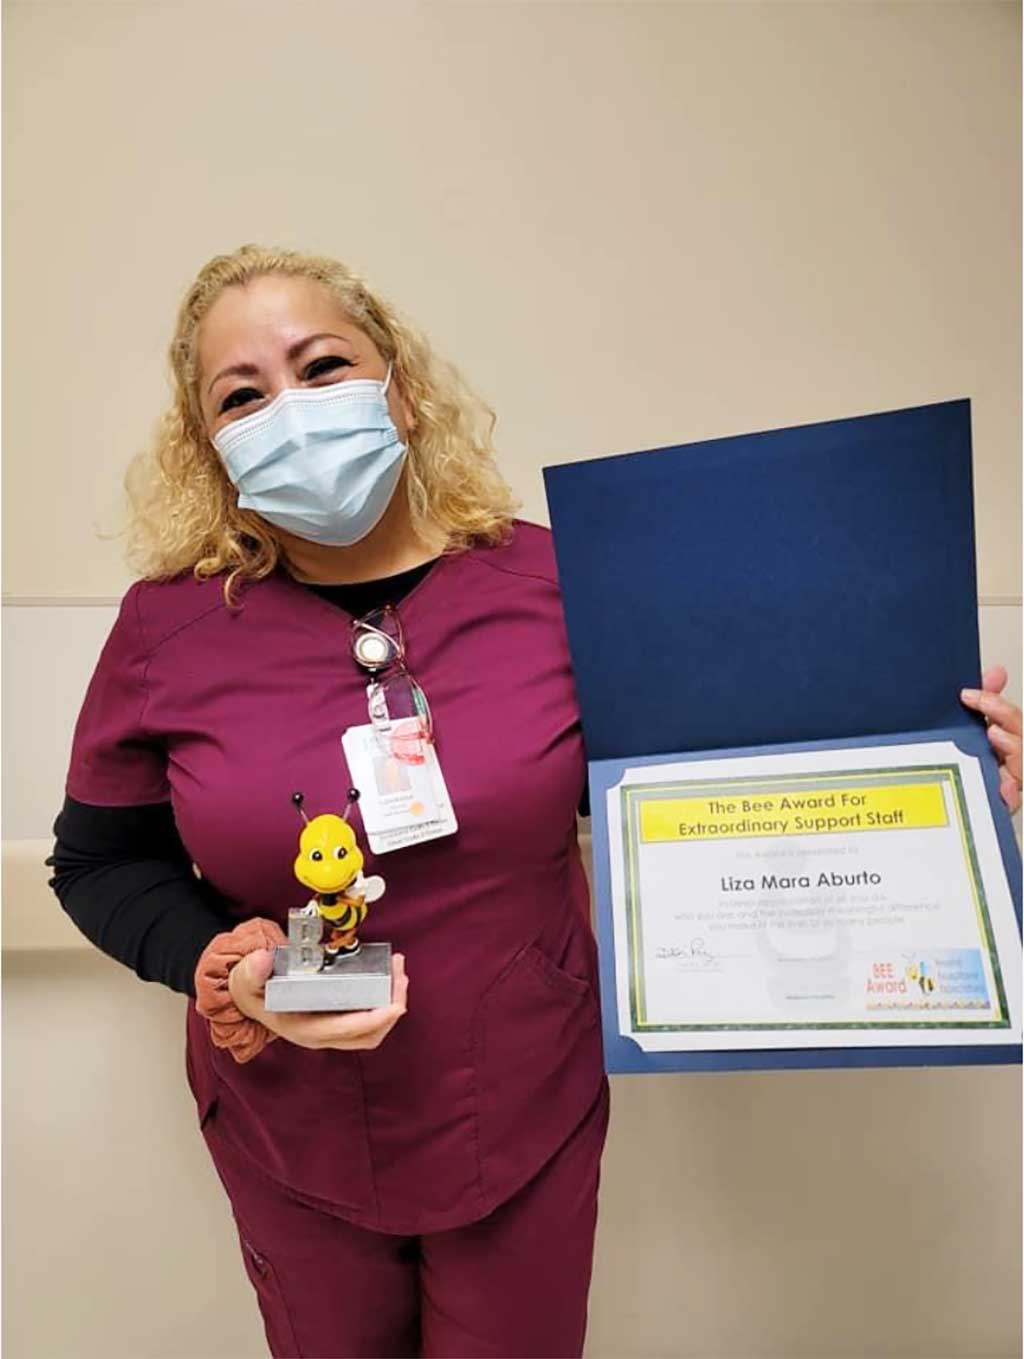 Liza Mara Aburto received the BEE Award for her compassion, kindness and patience.